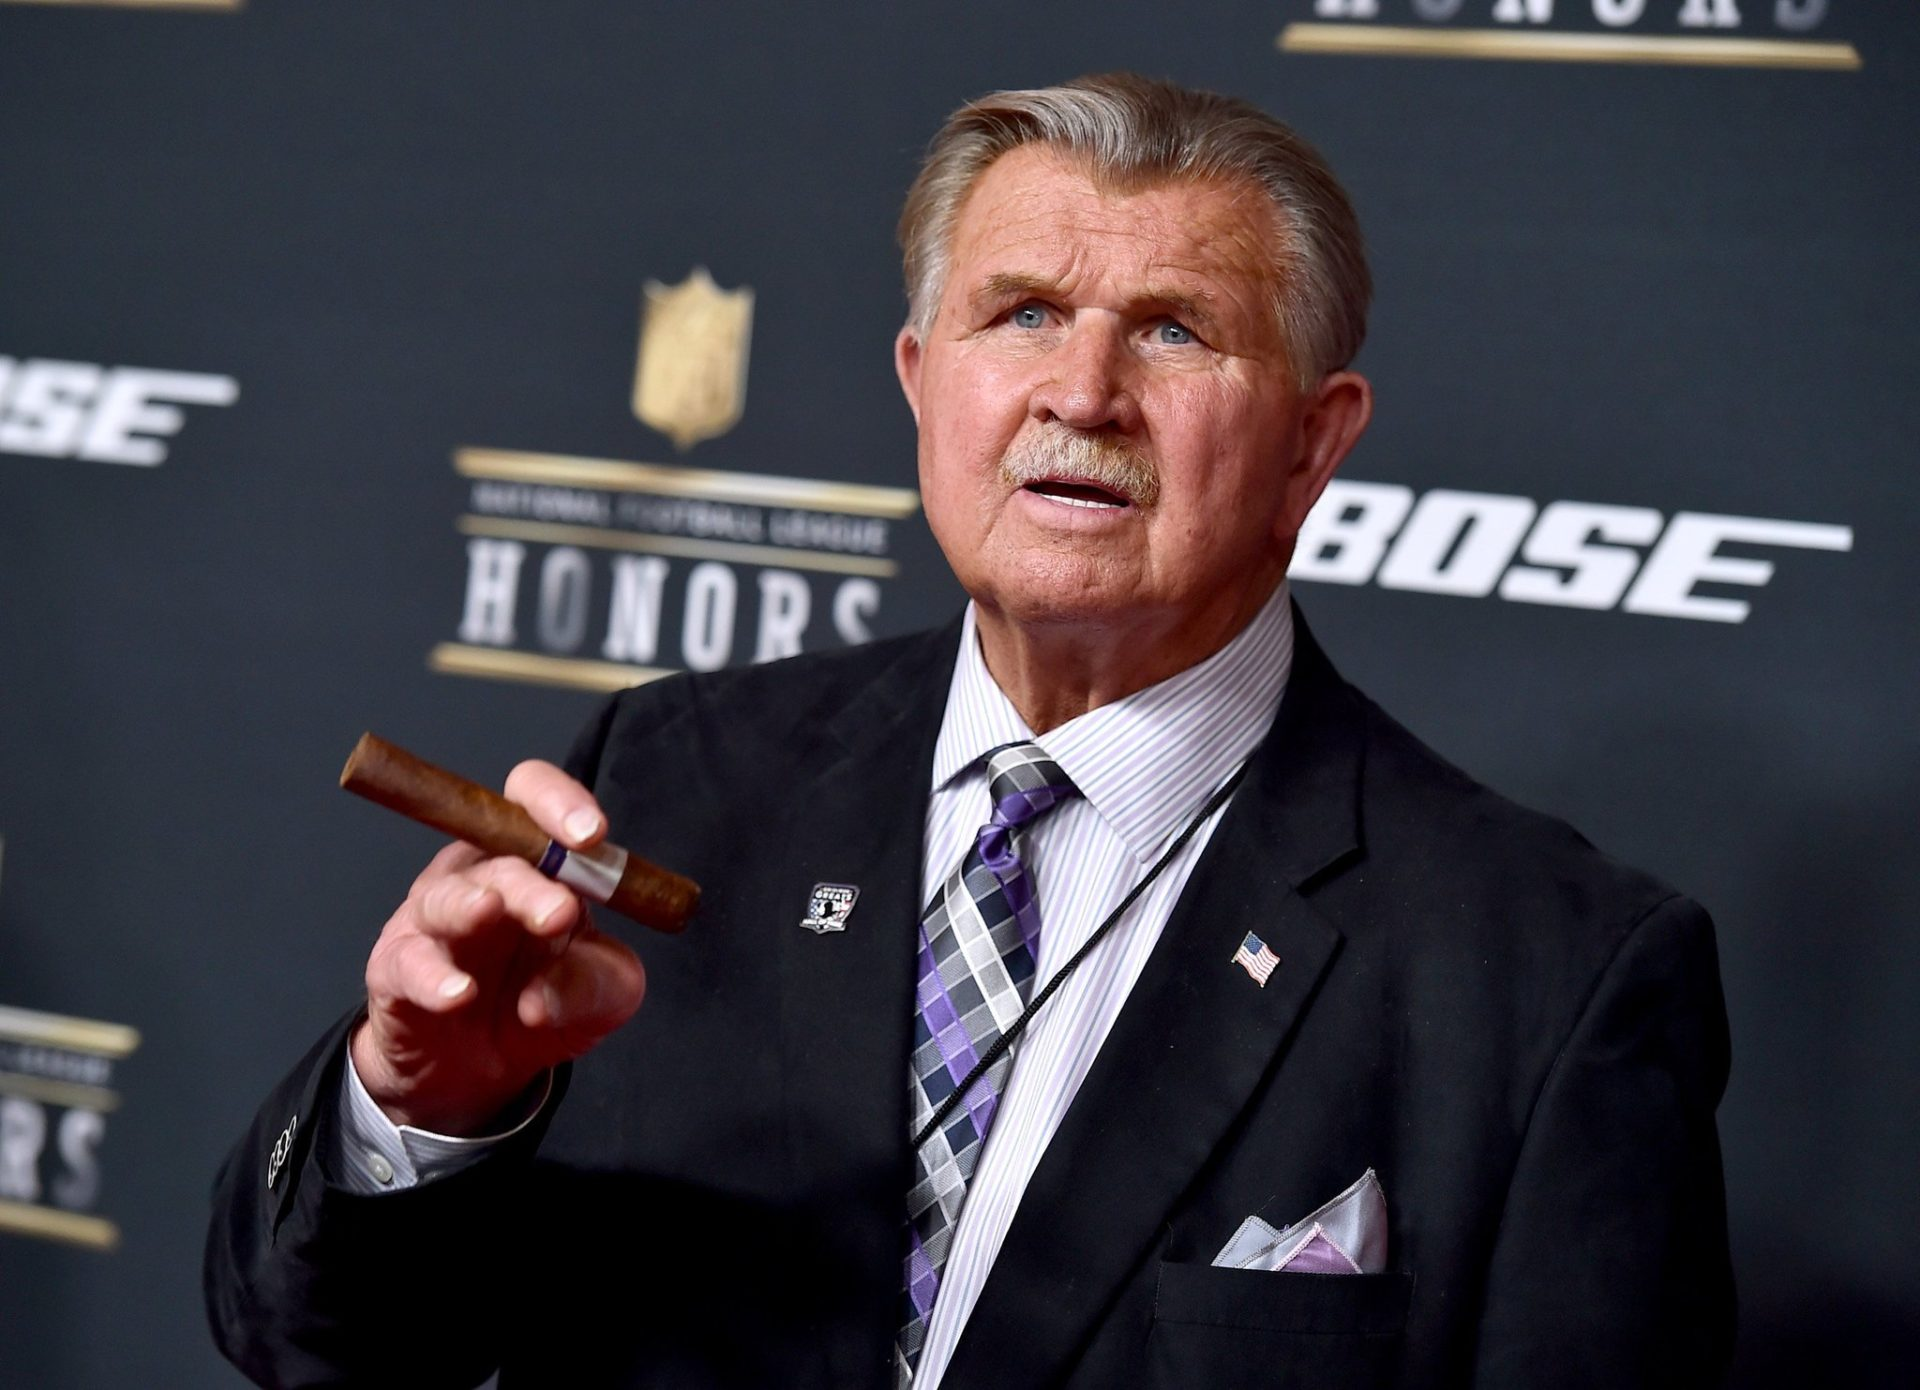 chi-mike-ditka-chicago-bears-photos-004.